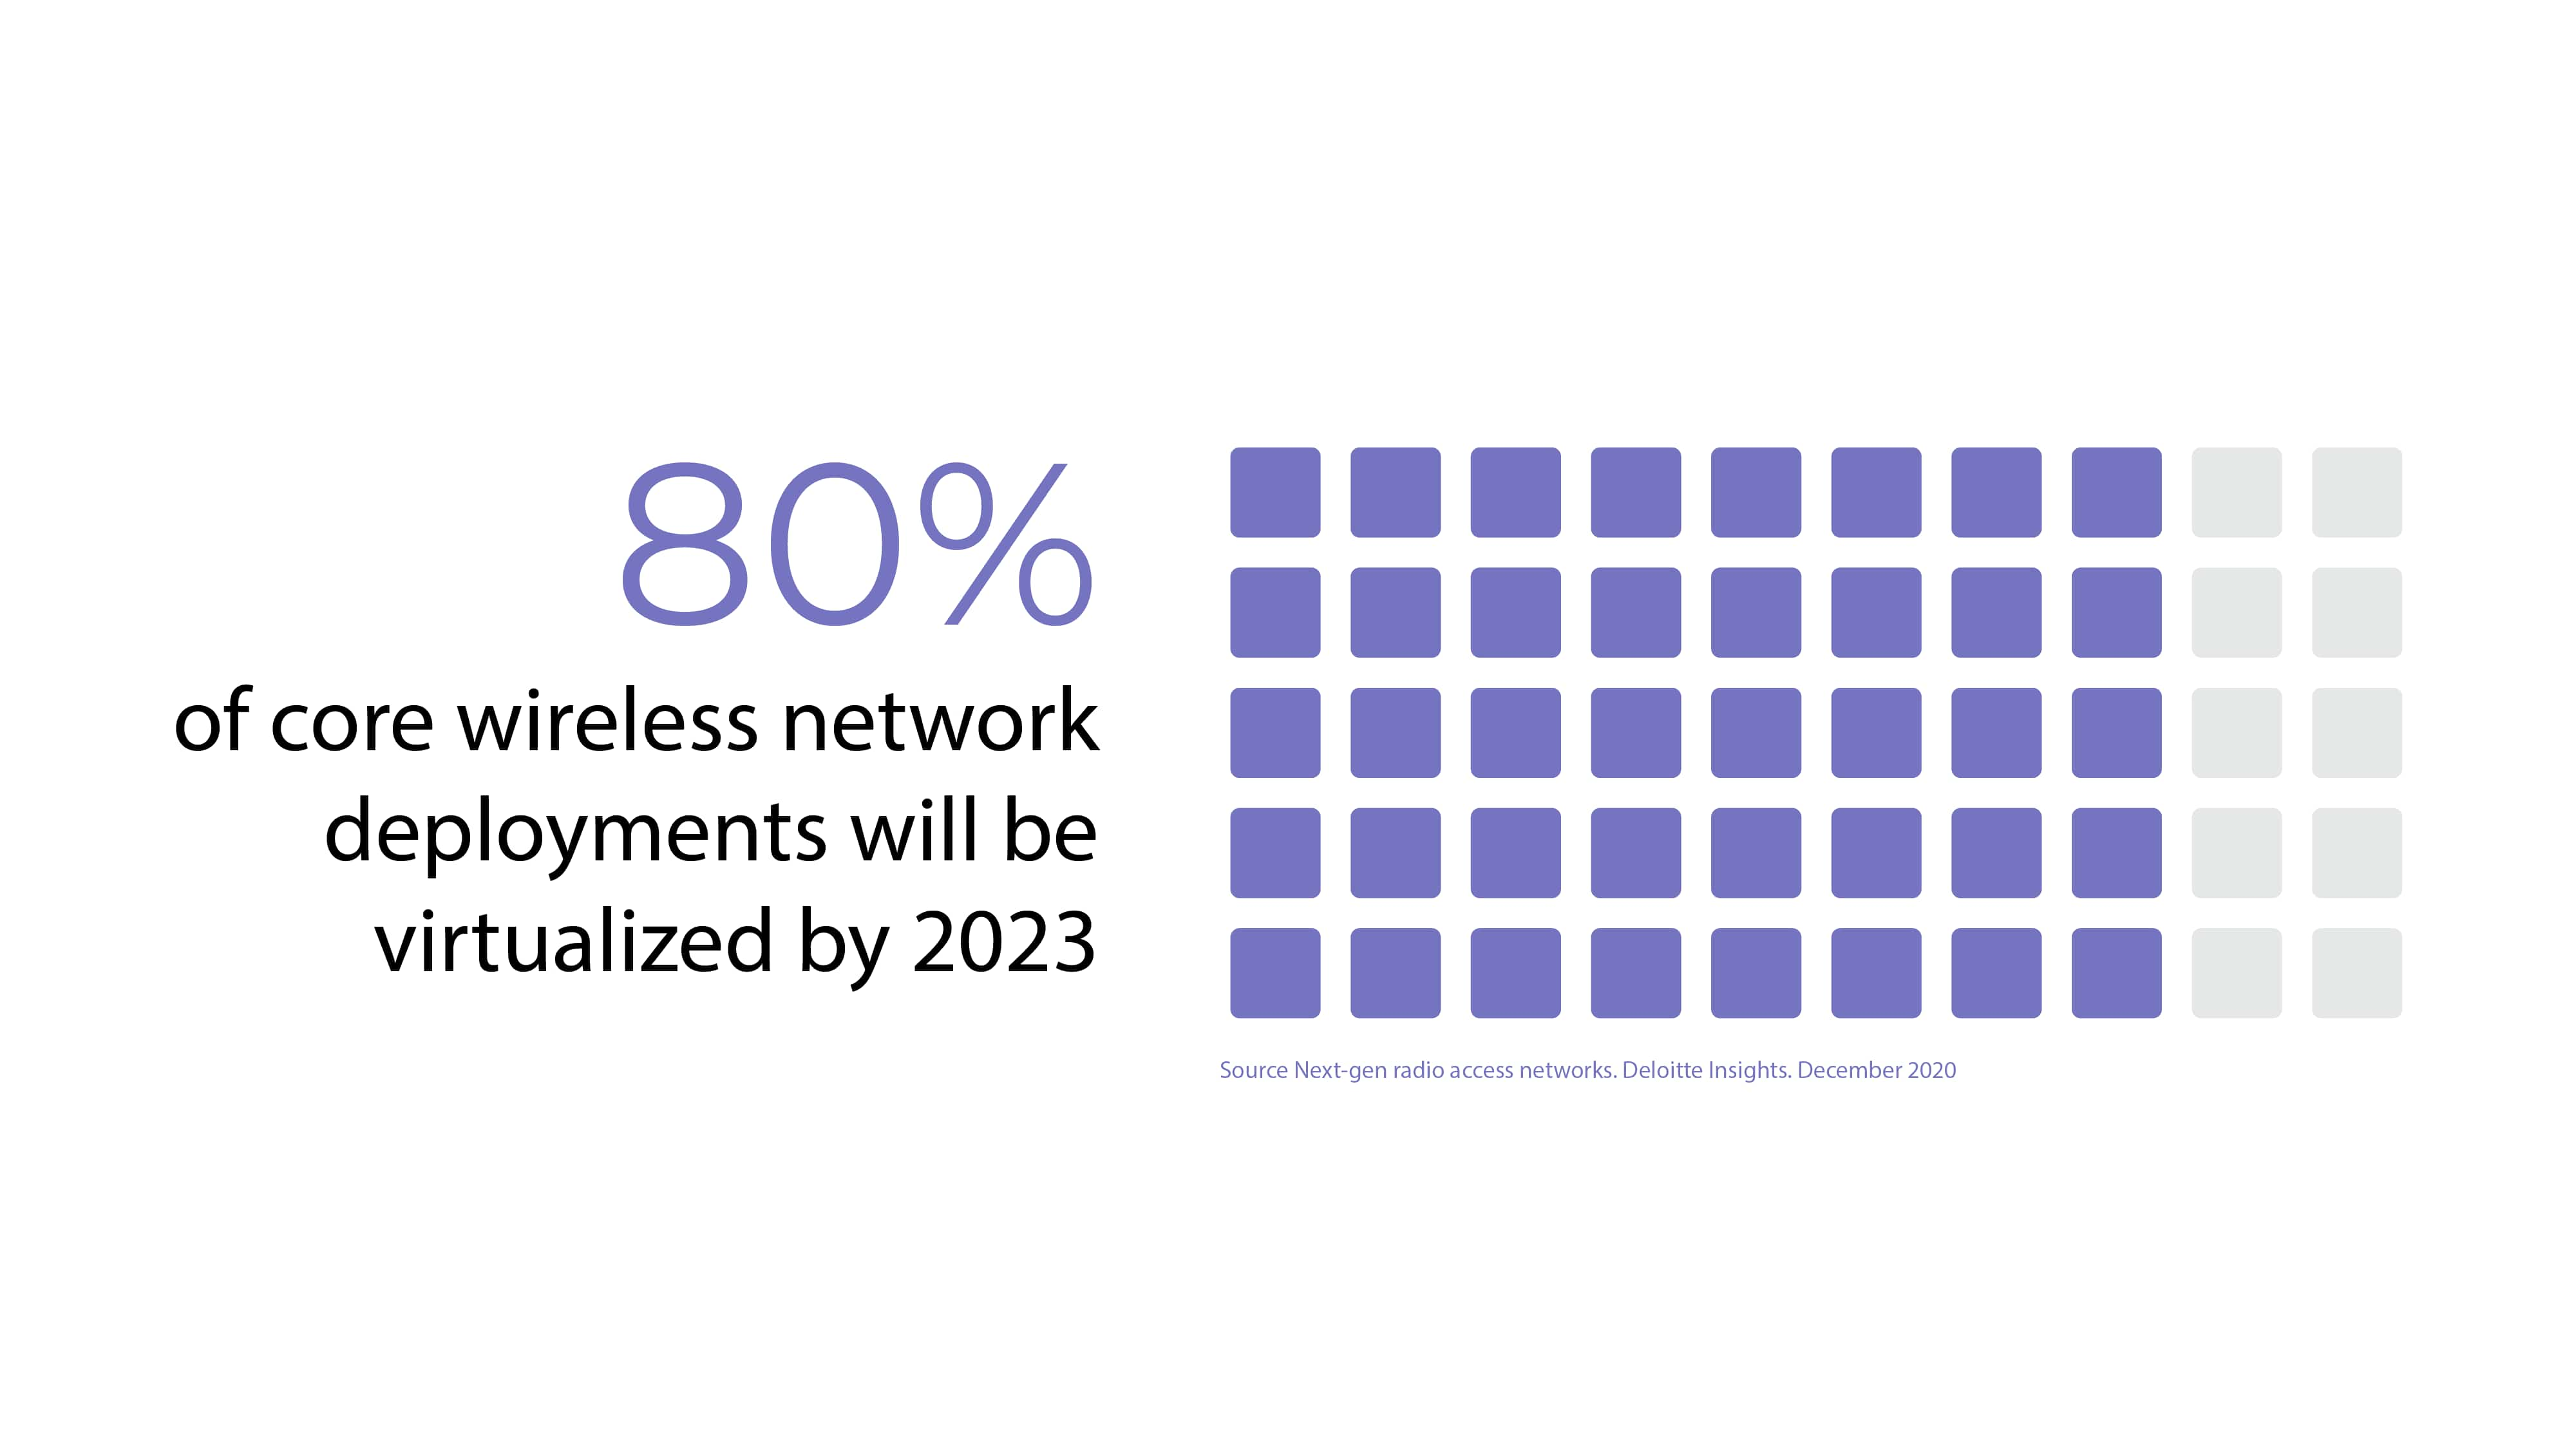 80% of core wireless network deployments will be virtualized by 2023